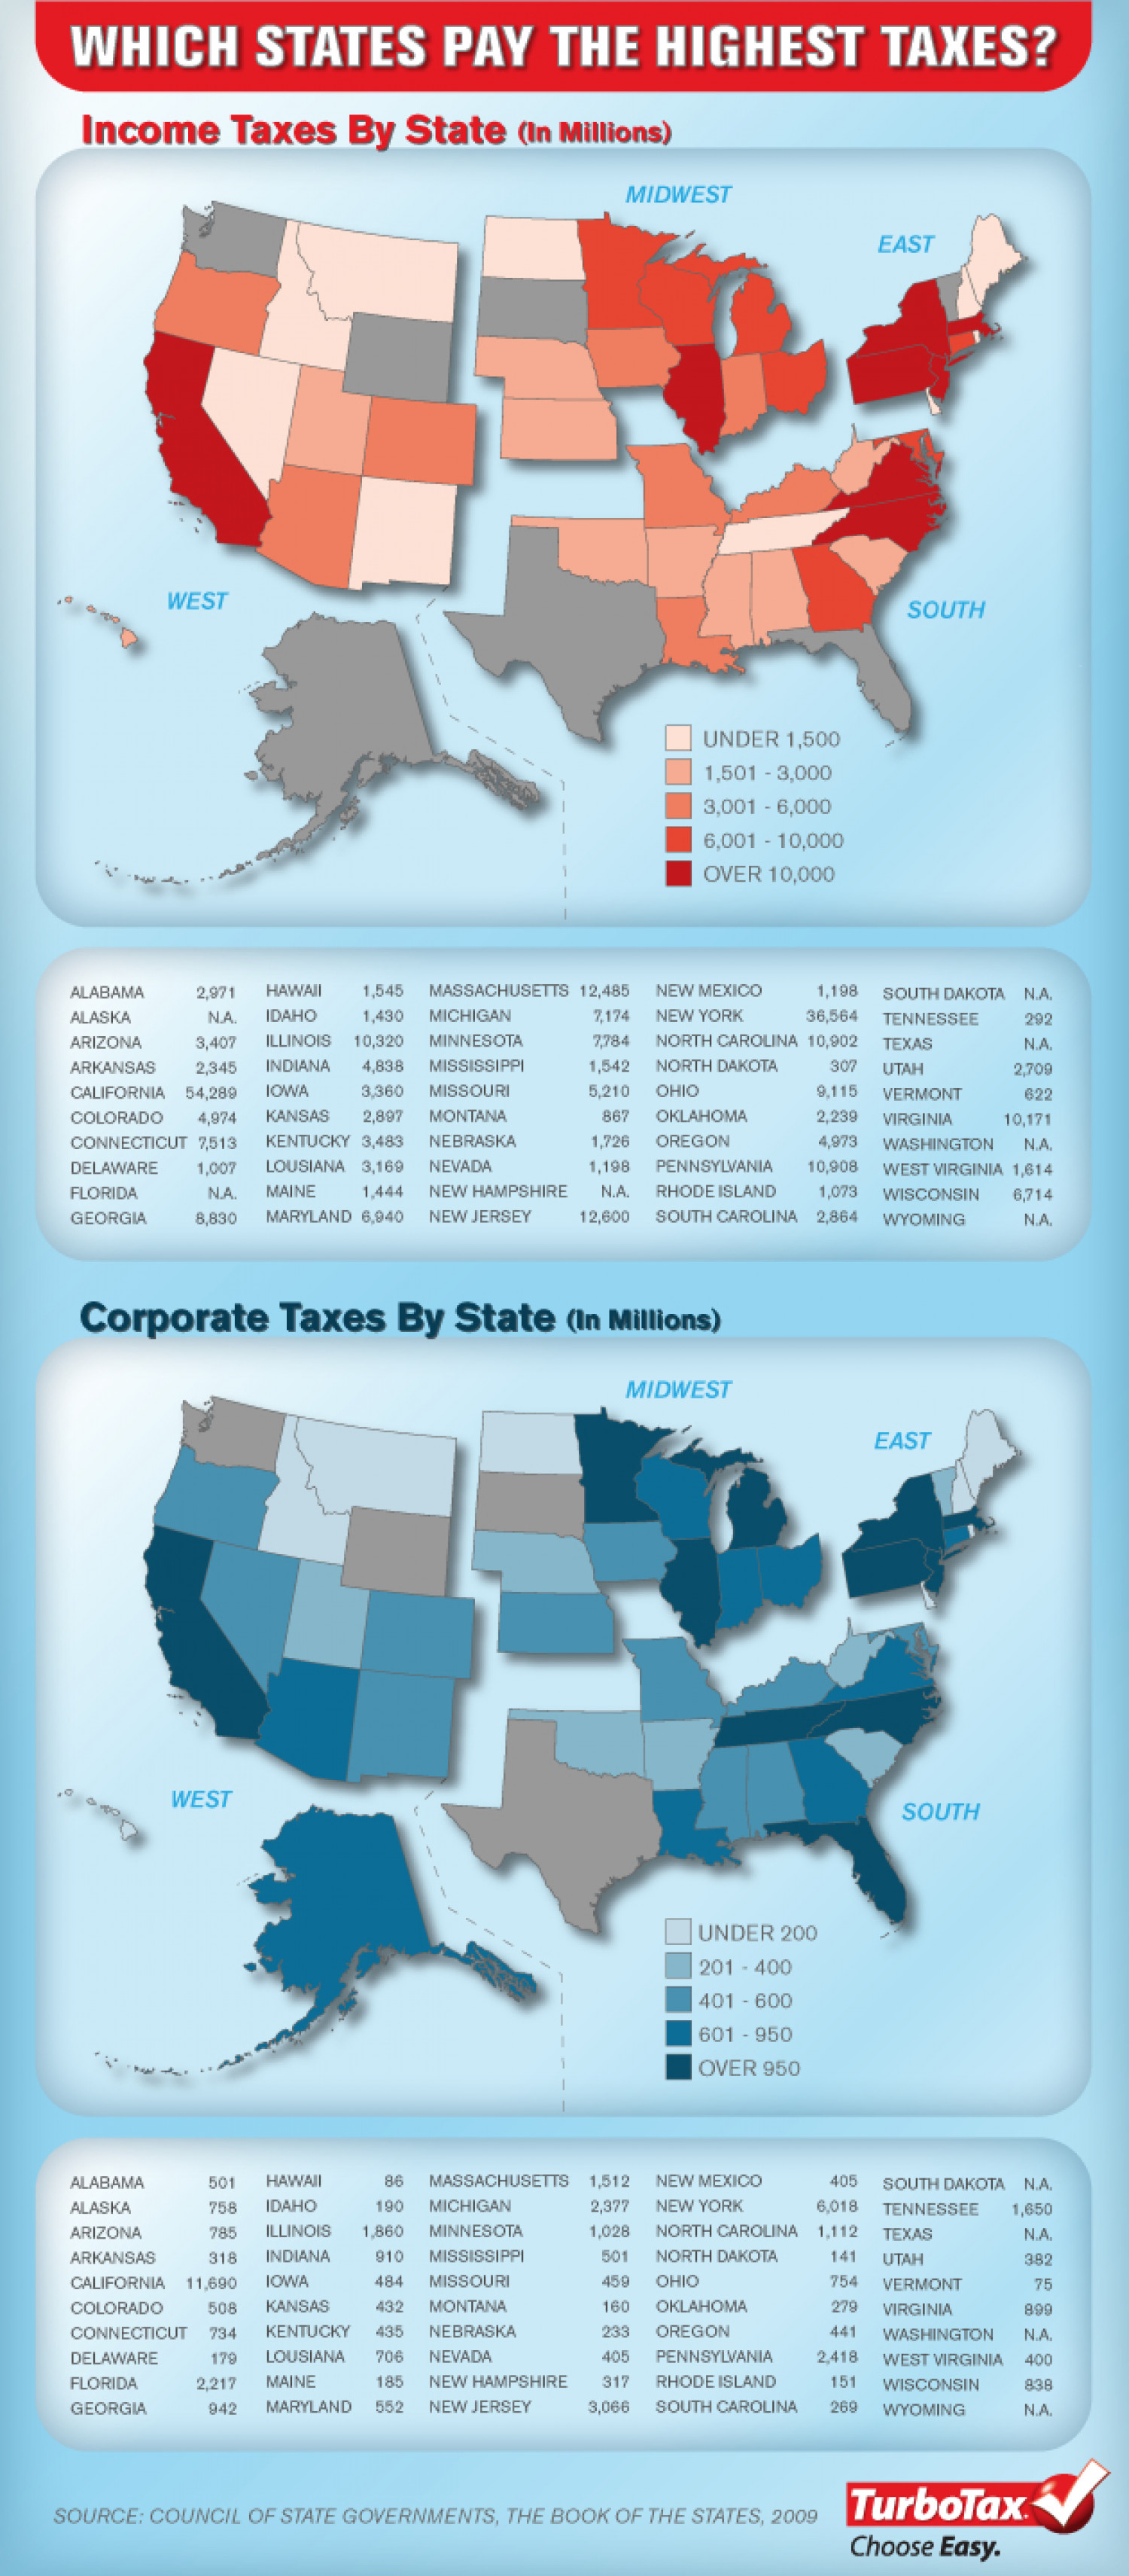 Which States Pay The Highest Taxes?